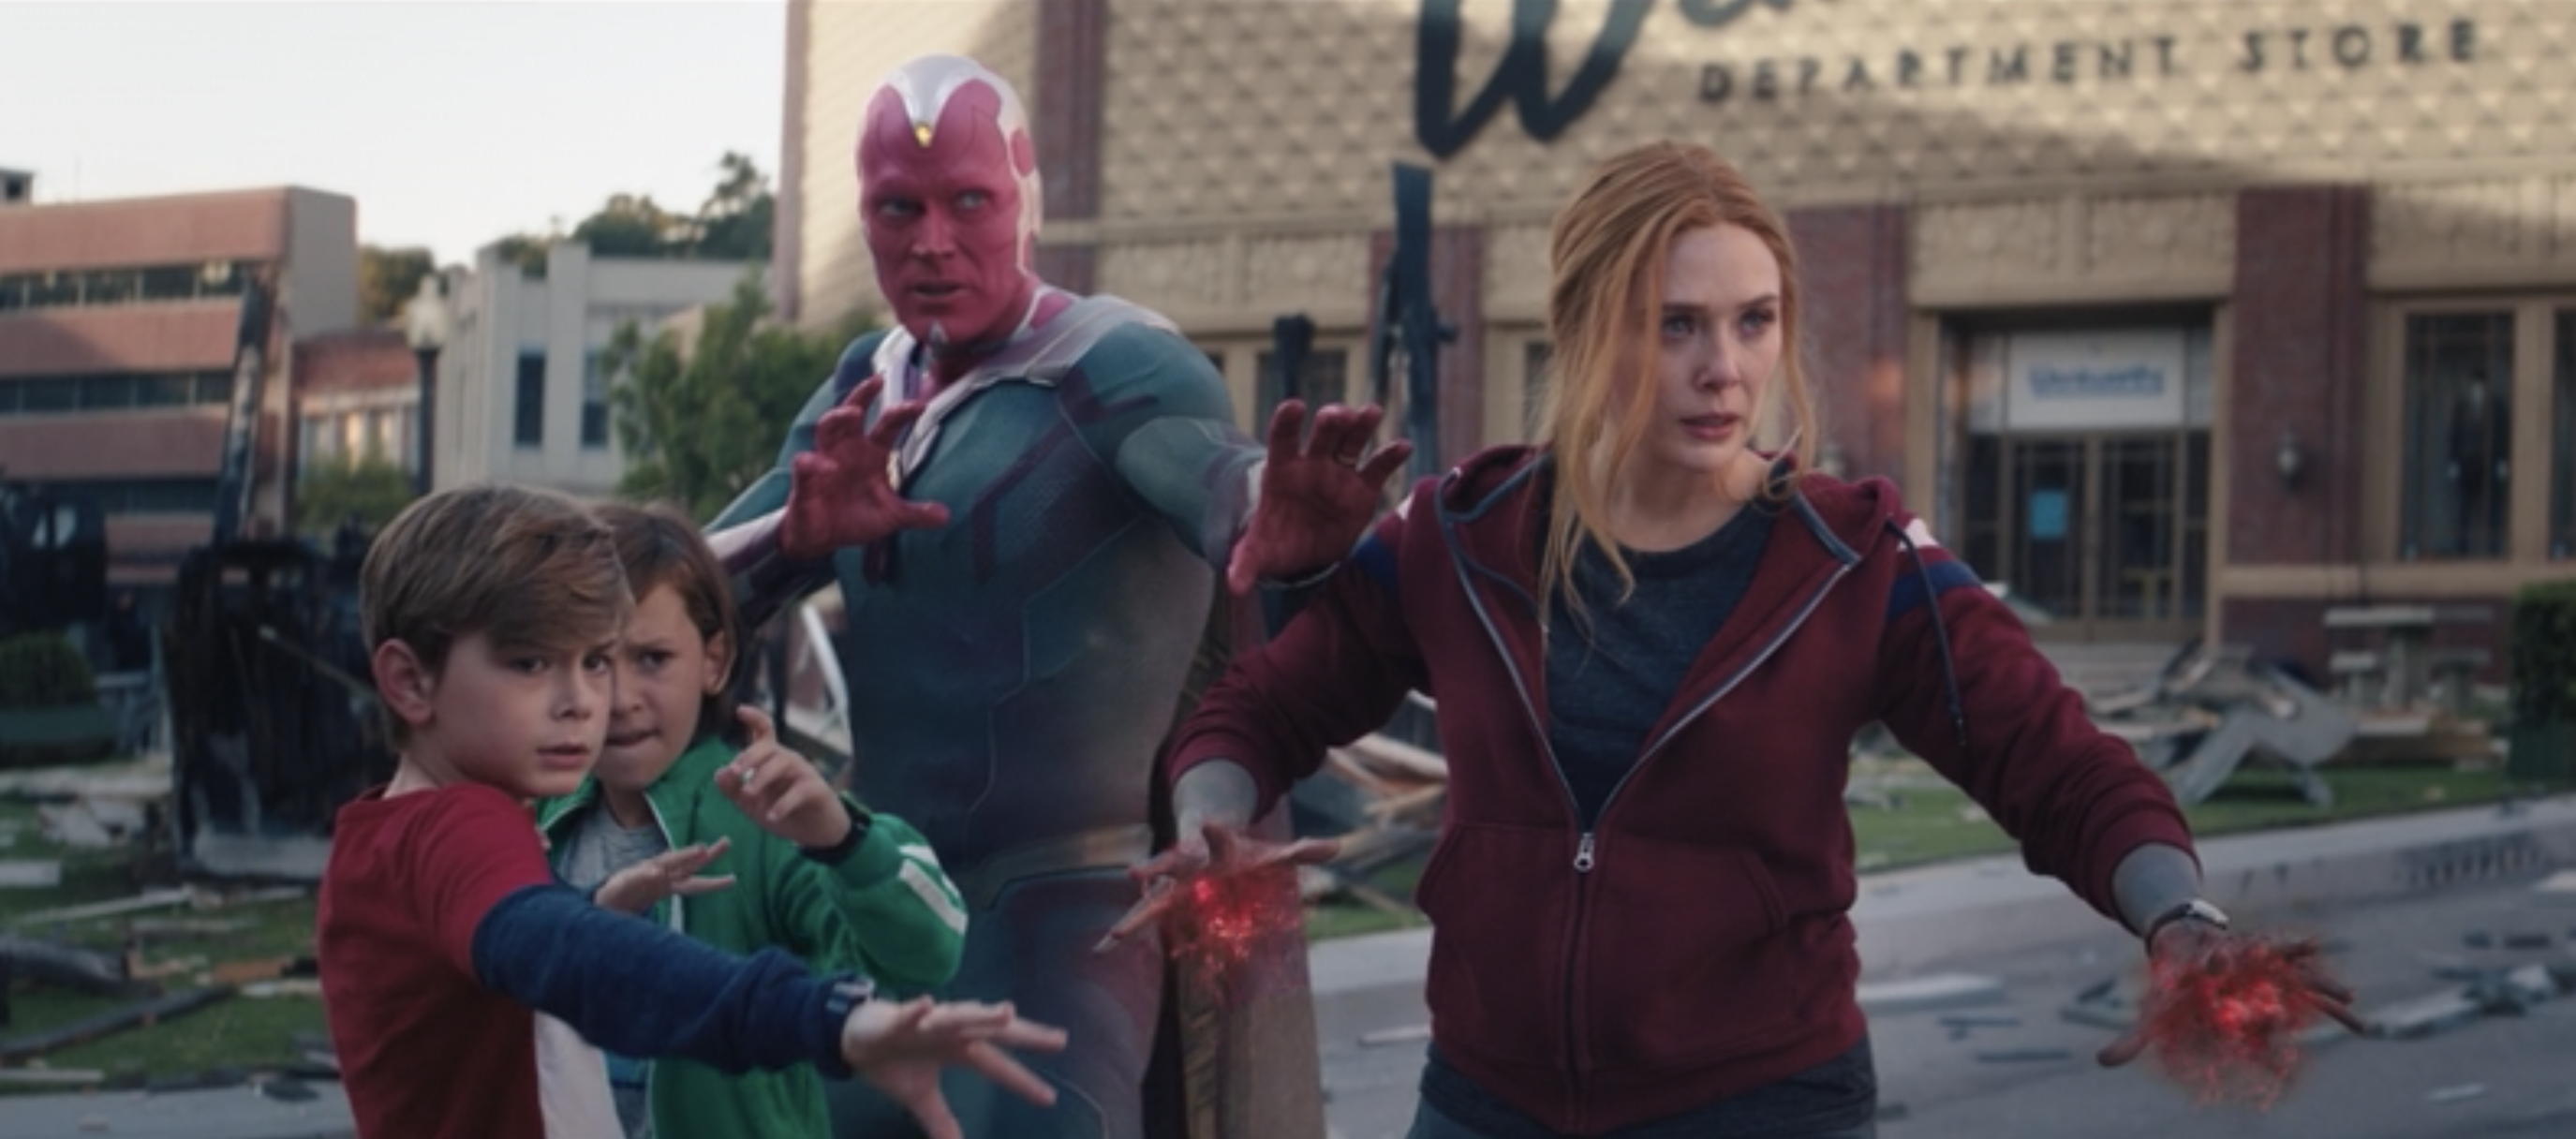 Wanda, Vision, Billy, and Tommy getting ready to fight